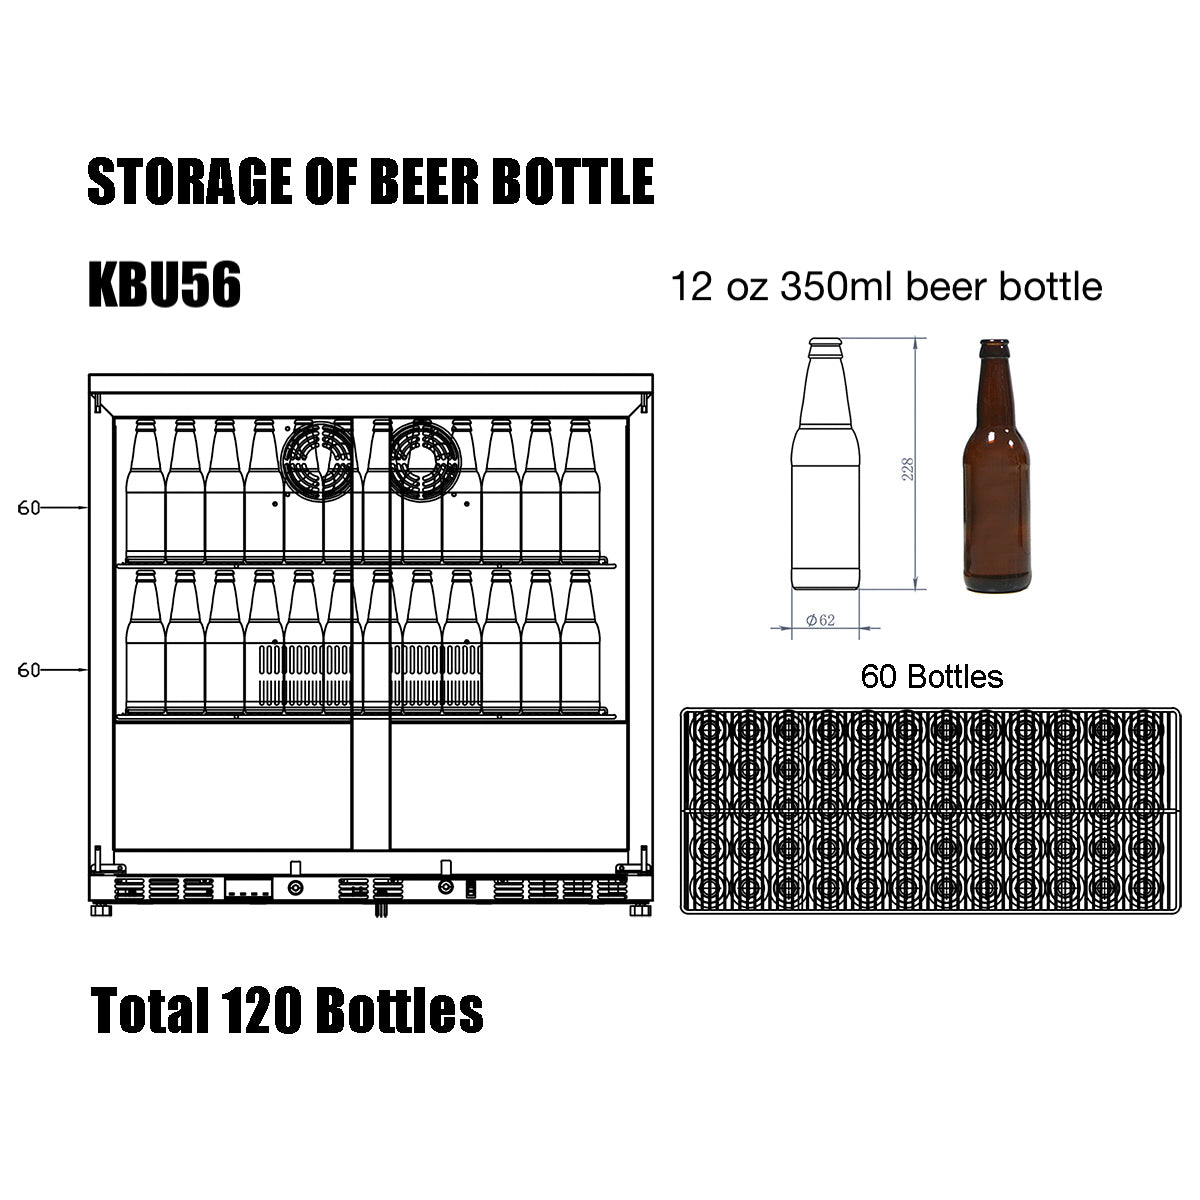 KBU56 Storage of Beer Bottle